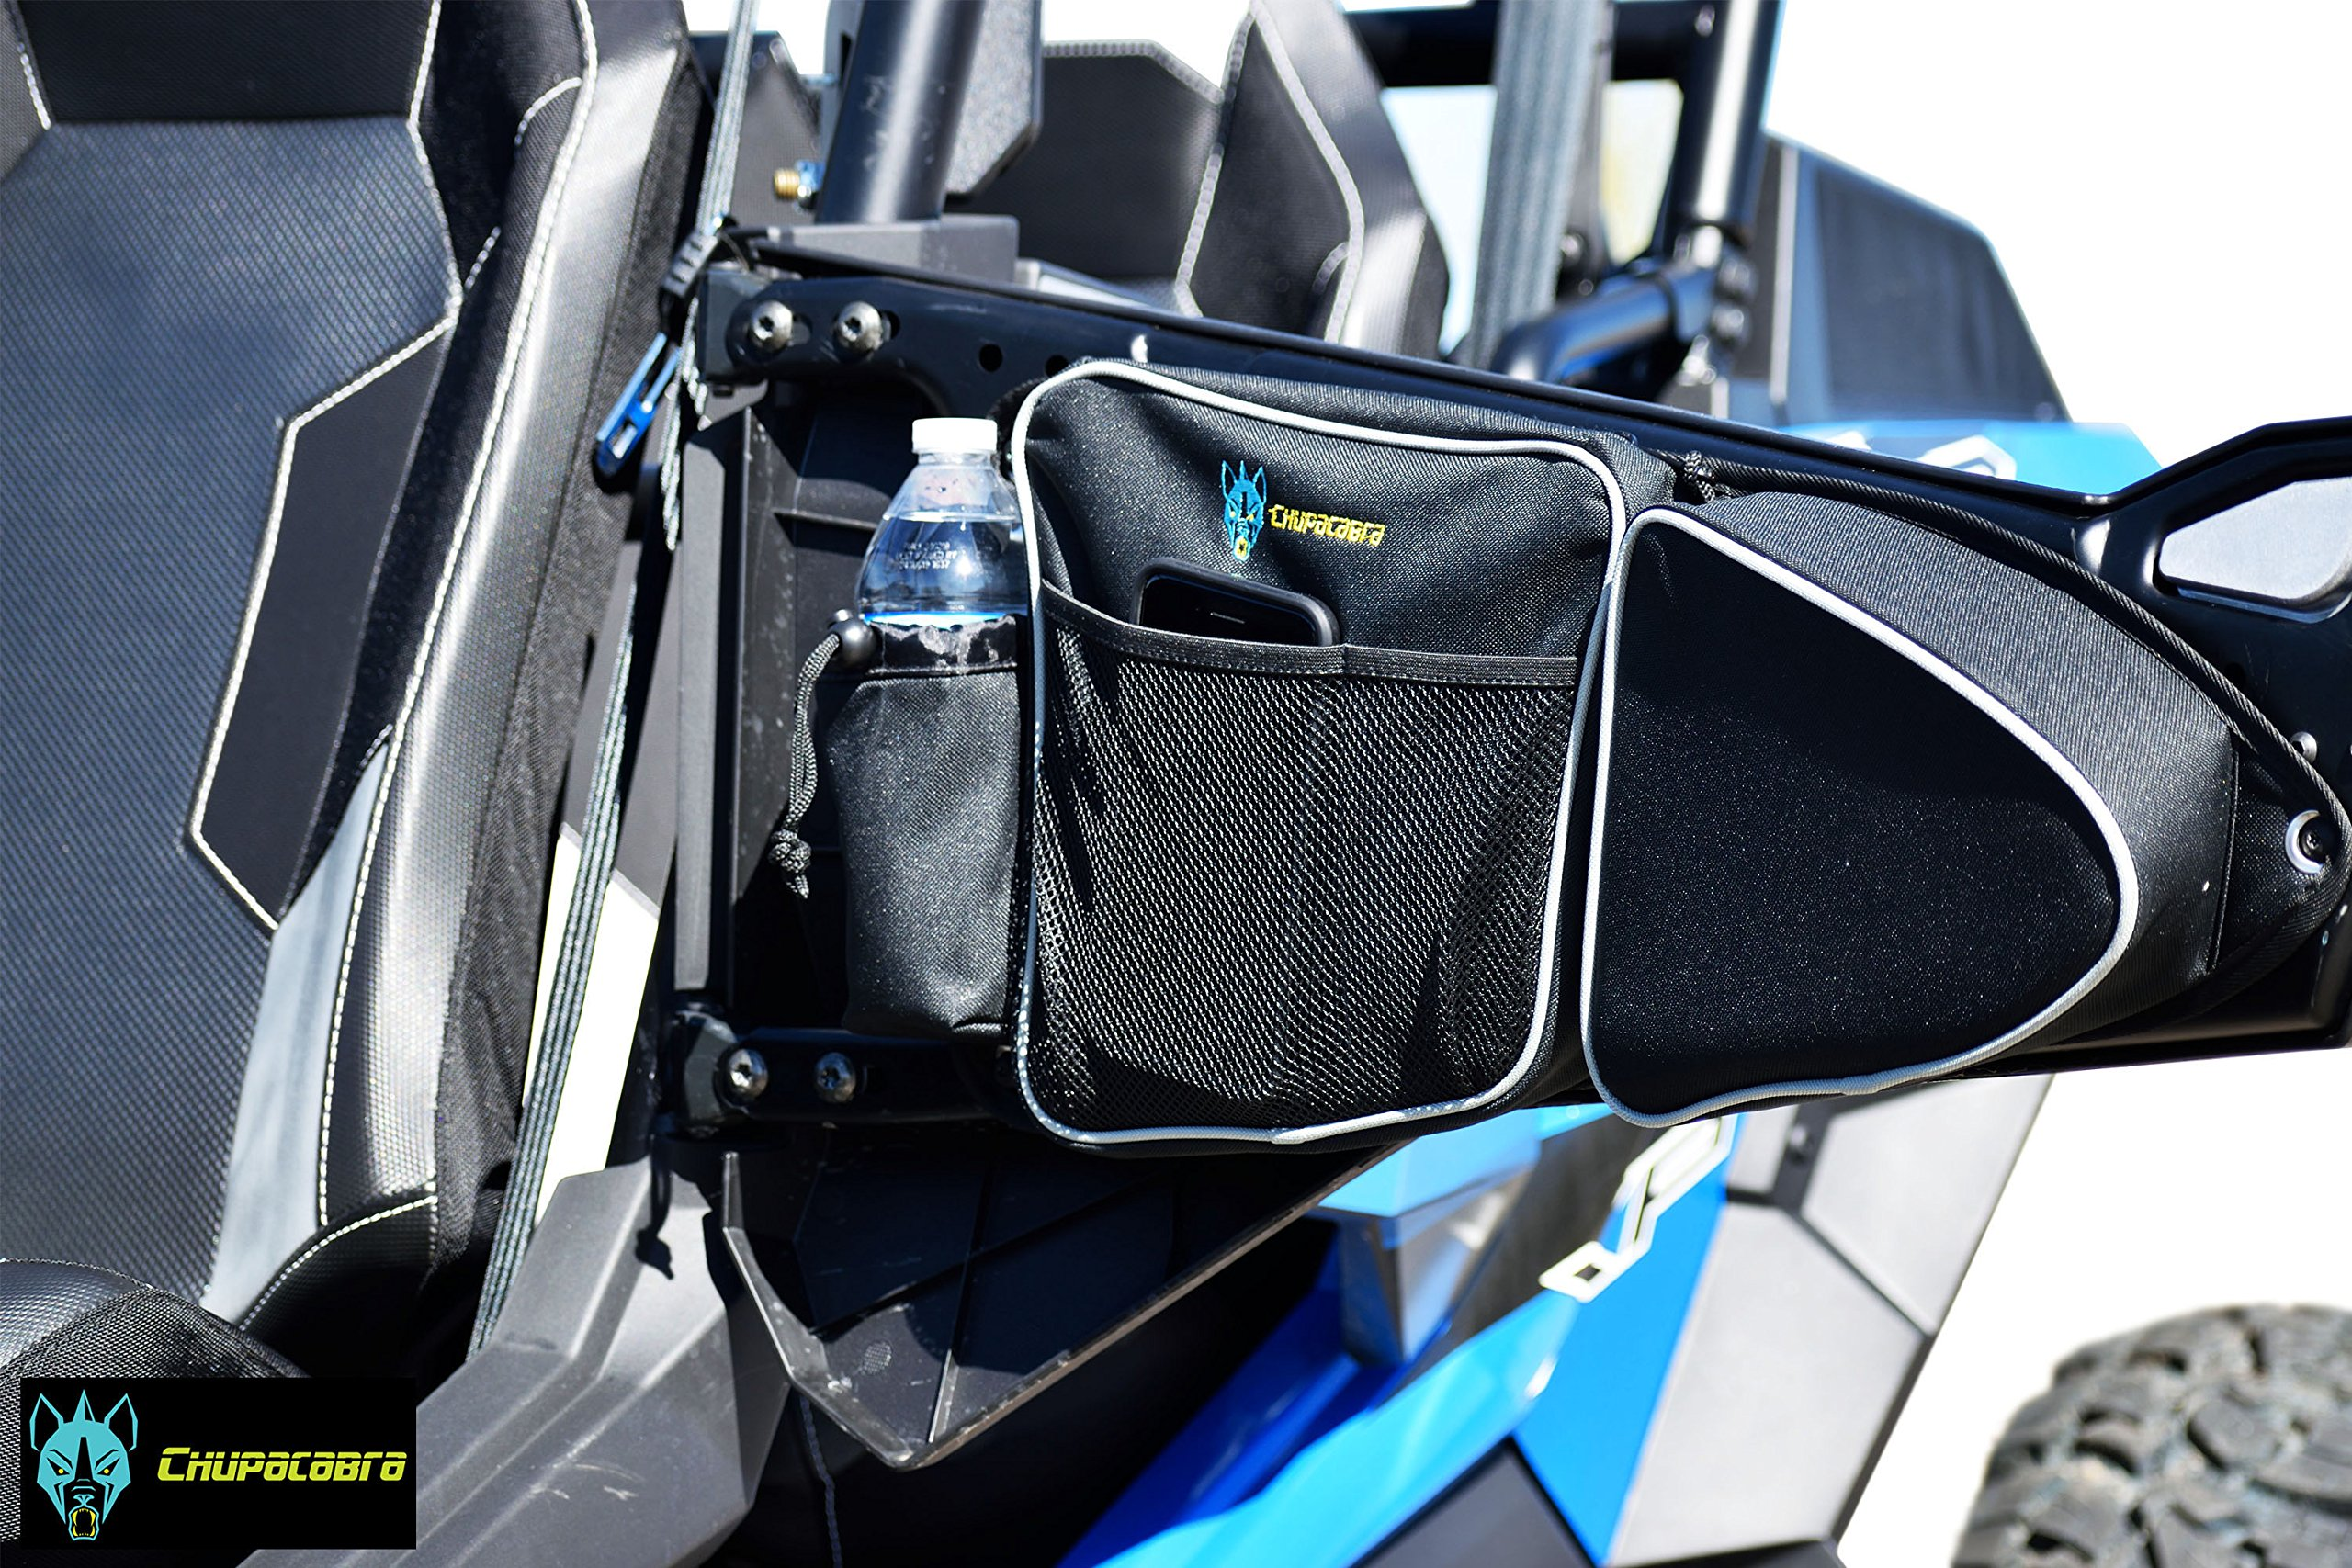 Chupacabra Offroad Door Bags RZR Turbo 1000 900S Passenger and Driver Side Storage Bag by Chupacabra Offroad (Image #6)